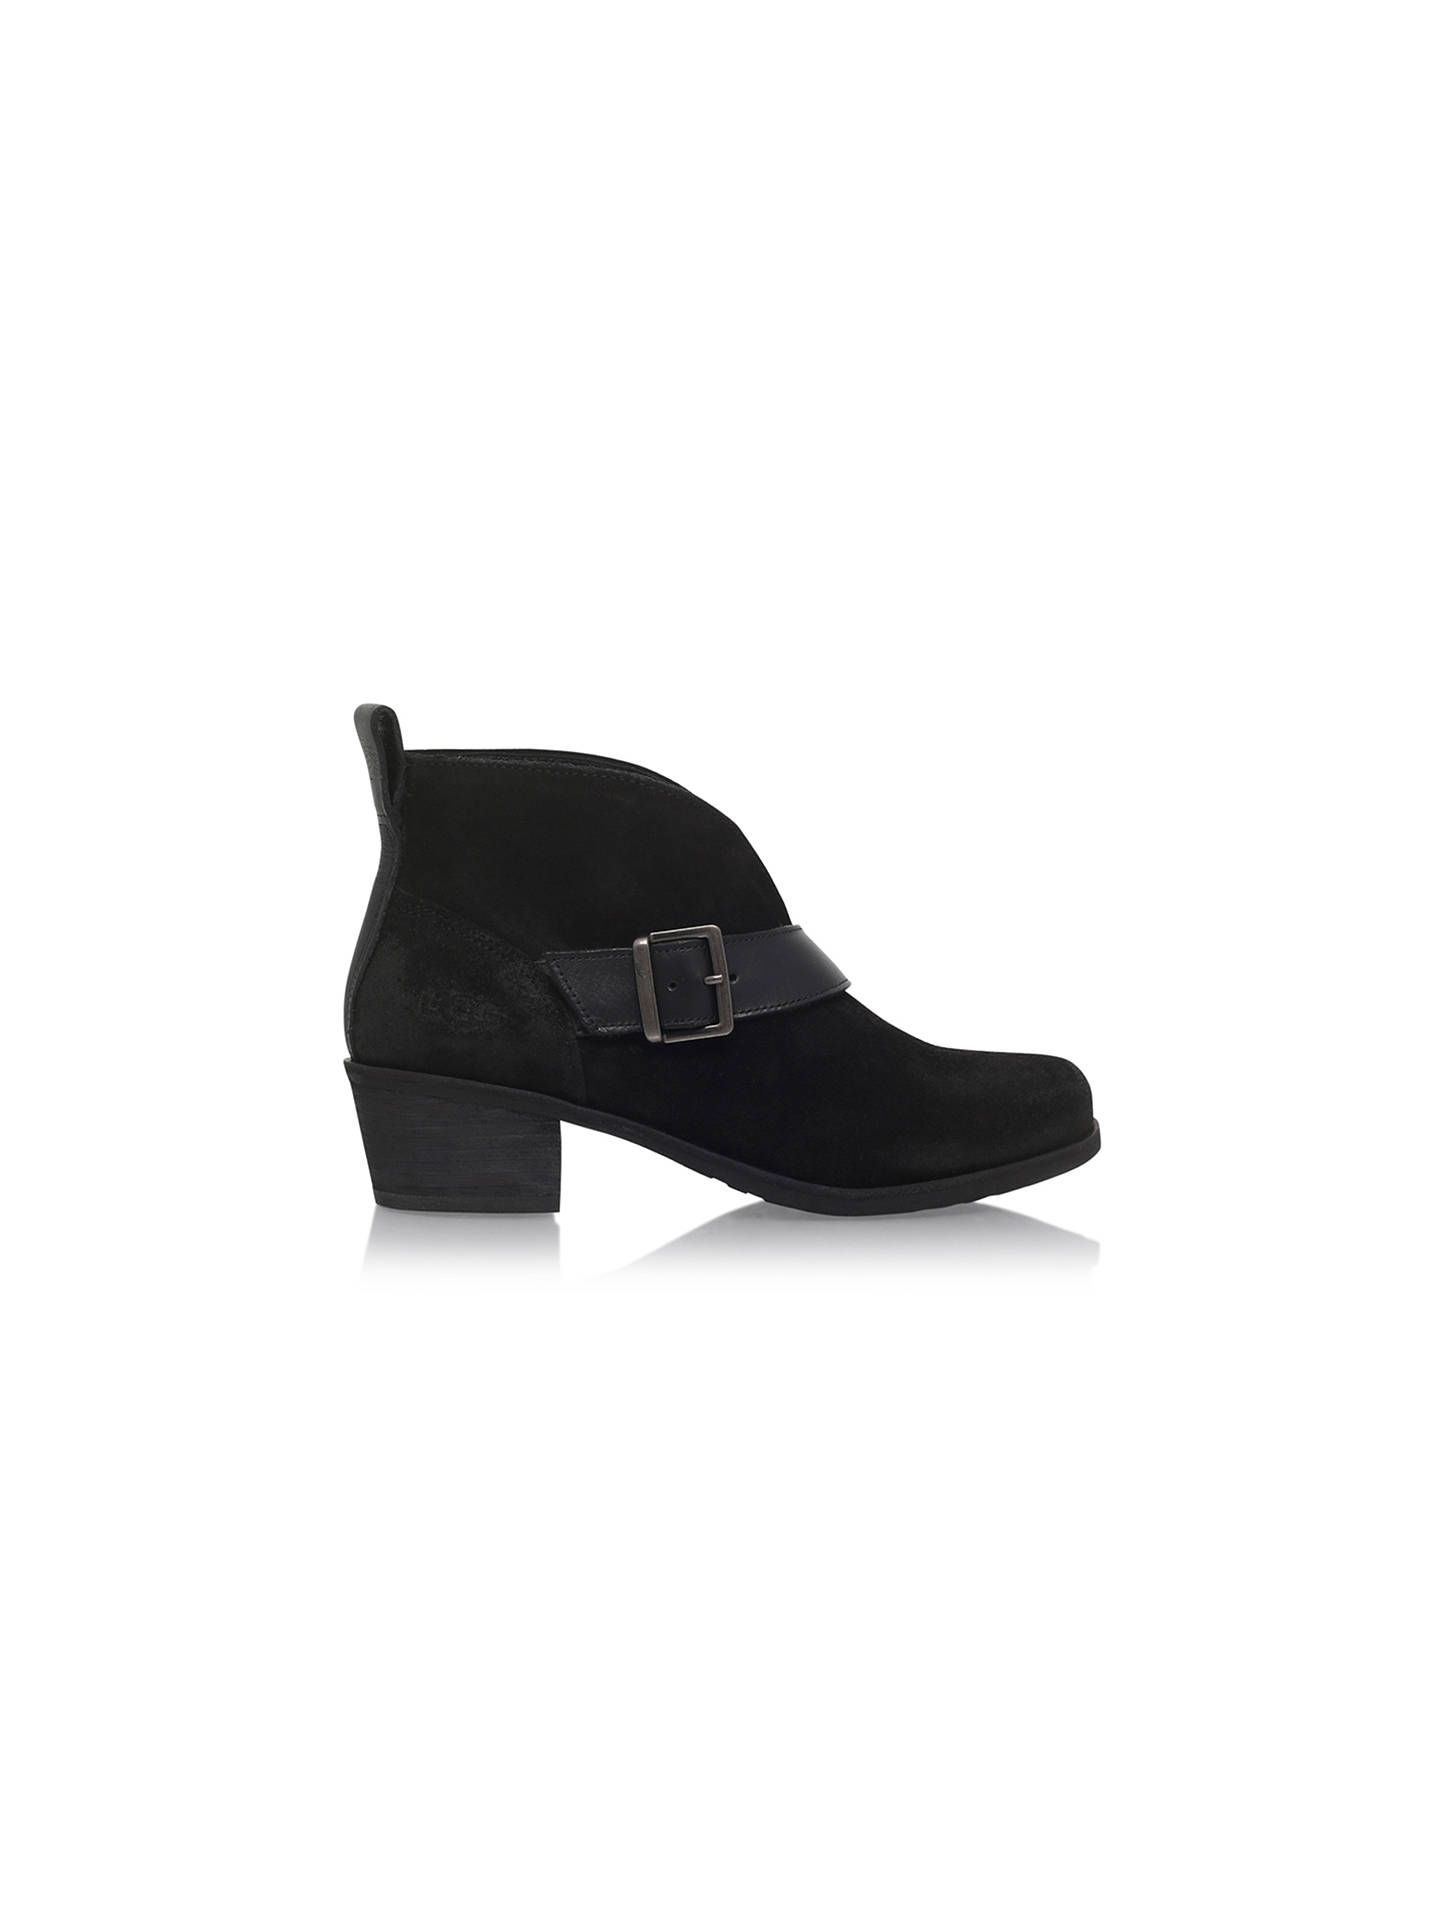 ddd0ebb74c1 UGG Wright Belted Ankle Boots at John Lewis & Partners